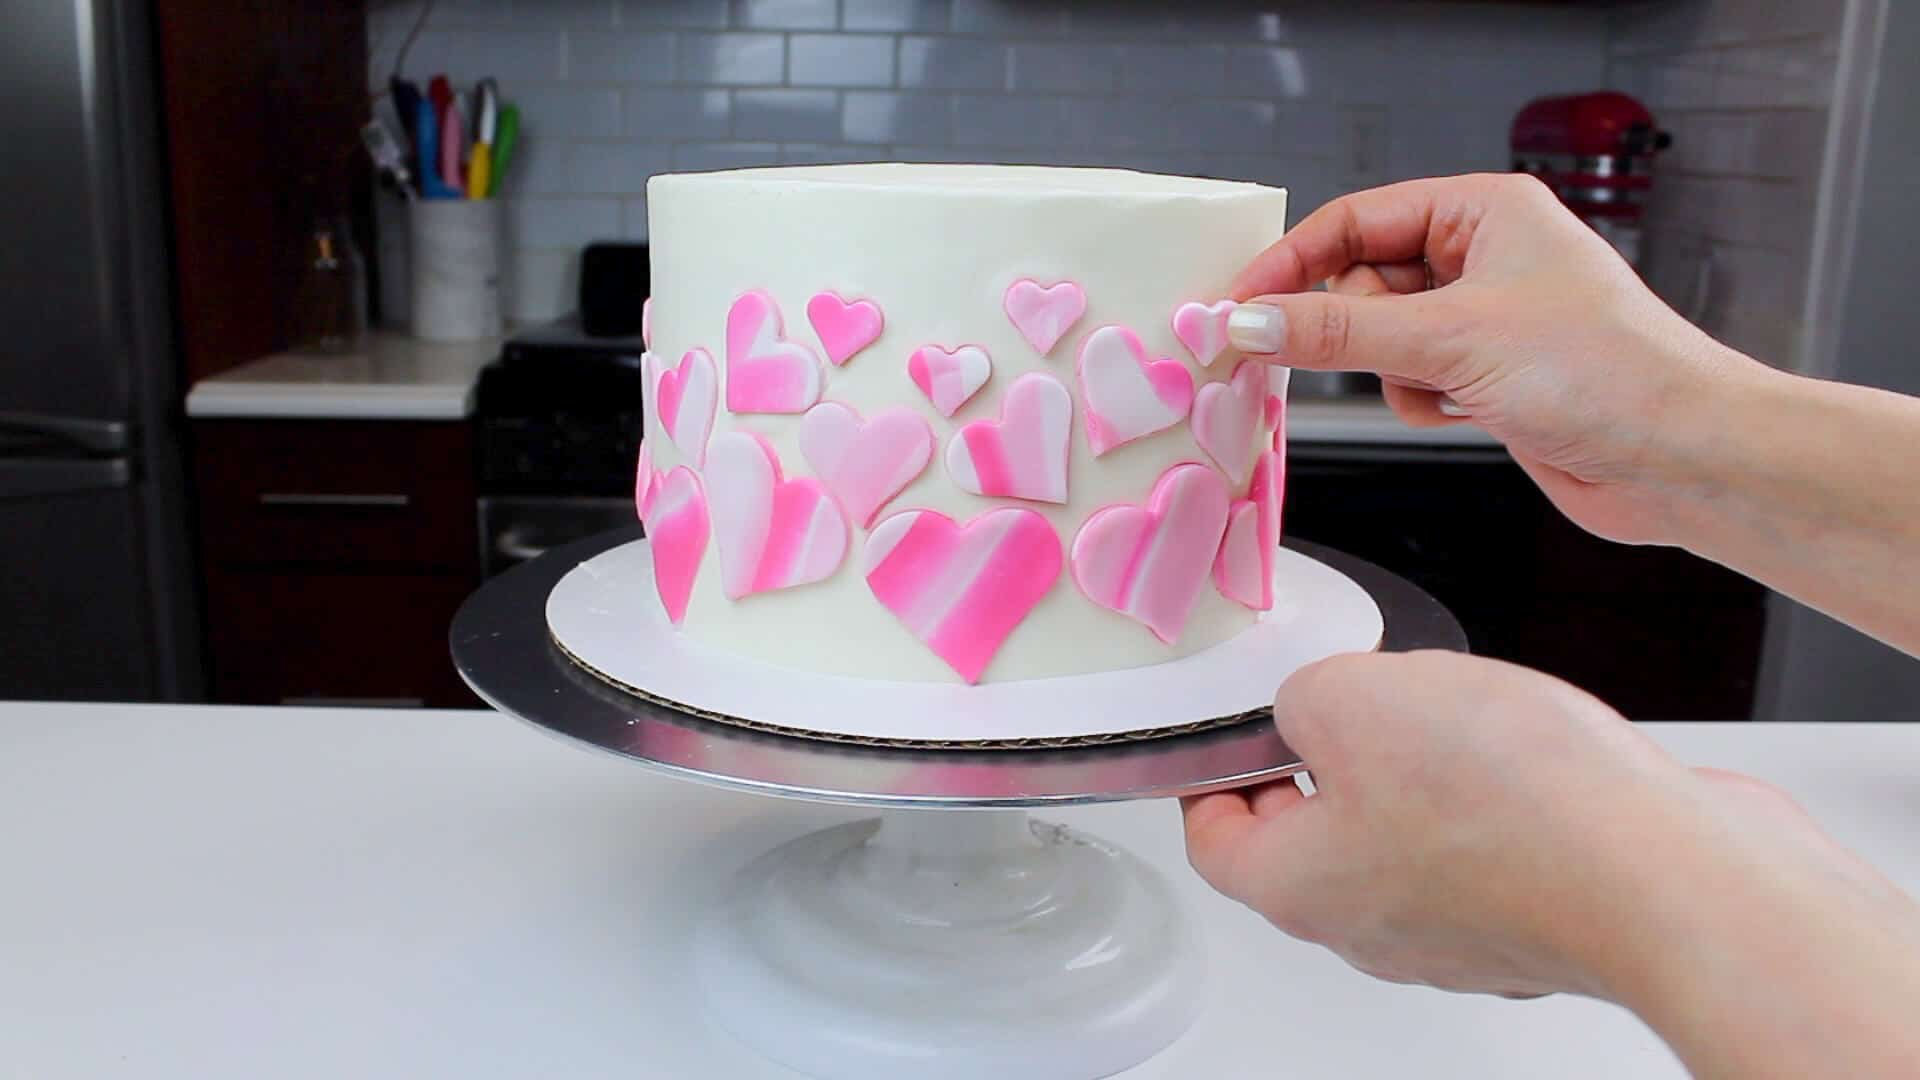 adding hearts to the sides